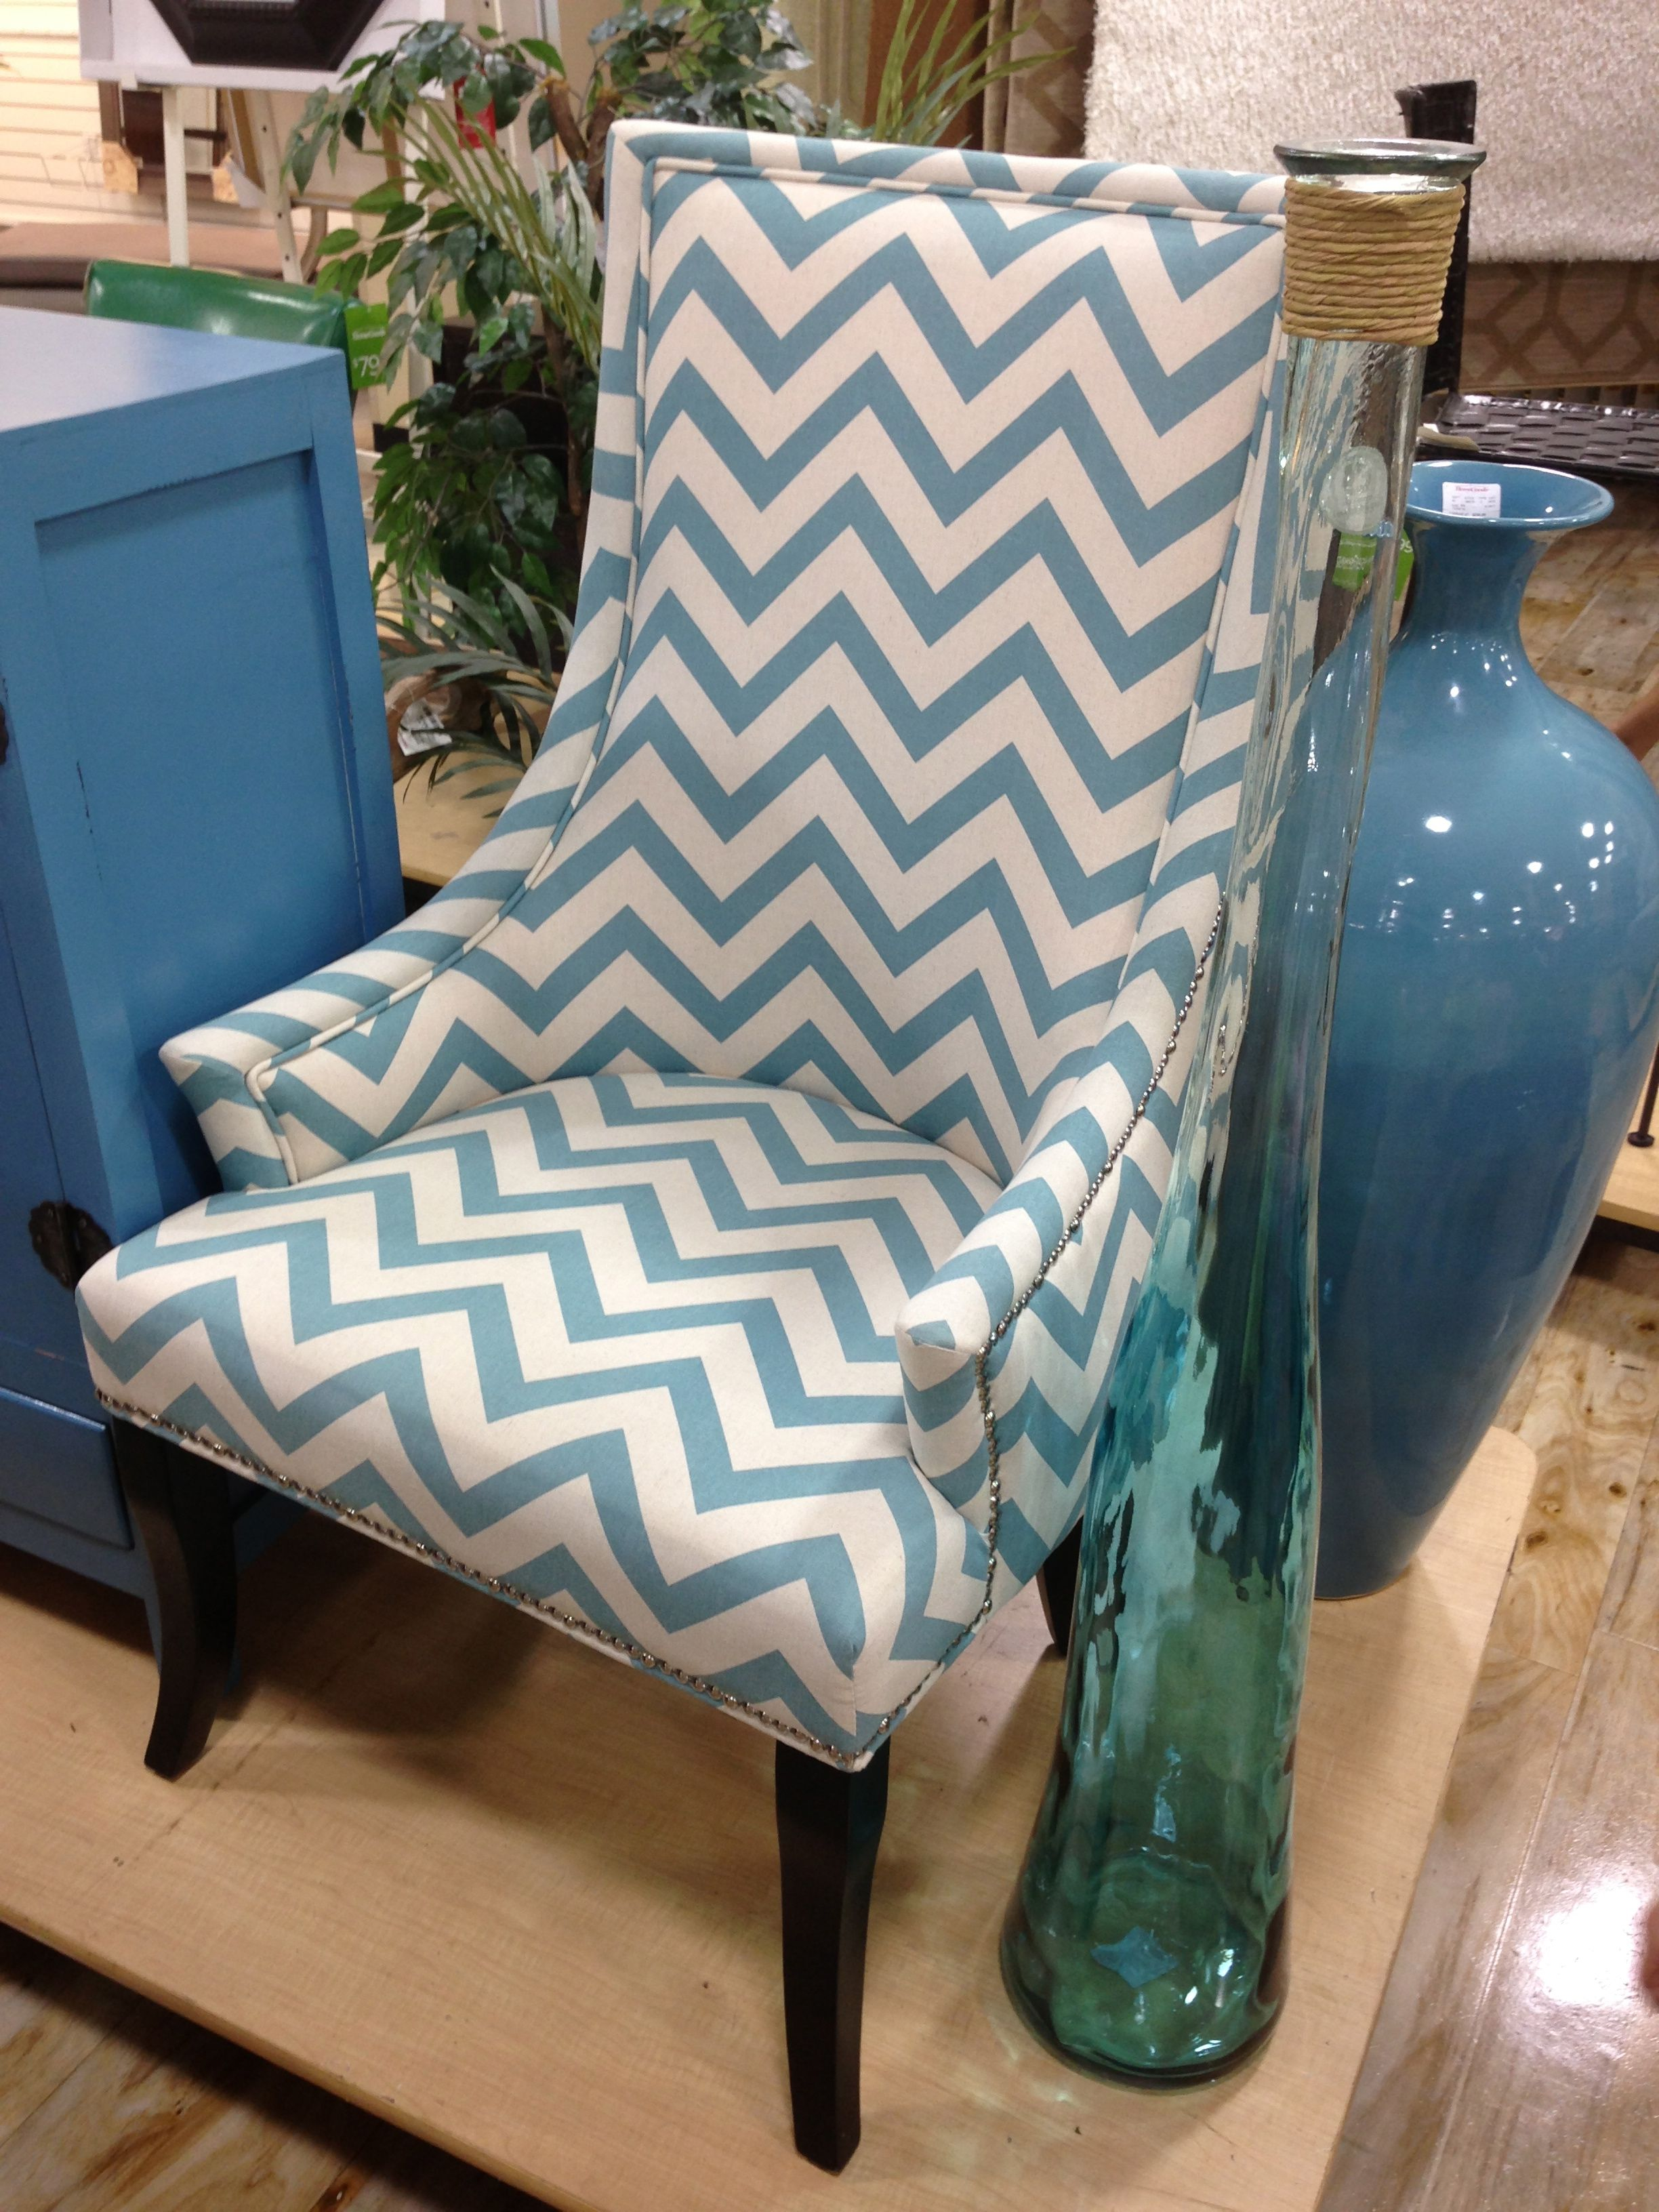 Ordinaire Fabulous Chevron Chair Found @T.J.Maxx